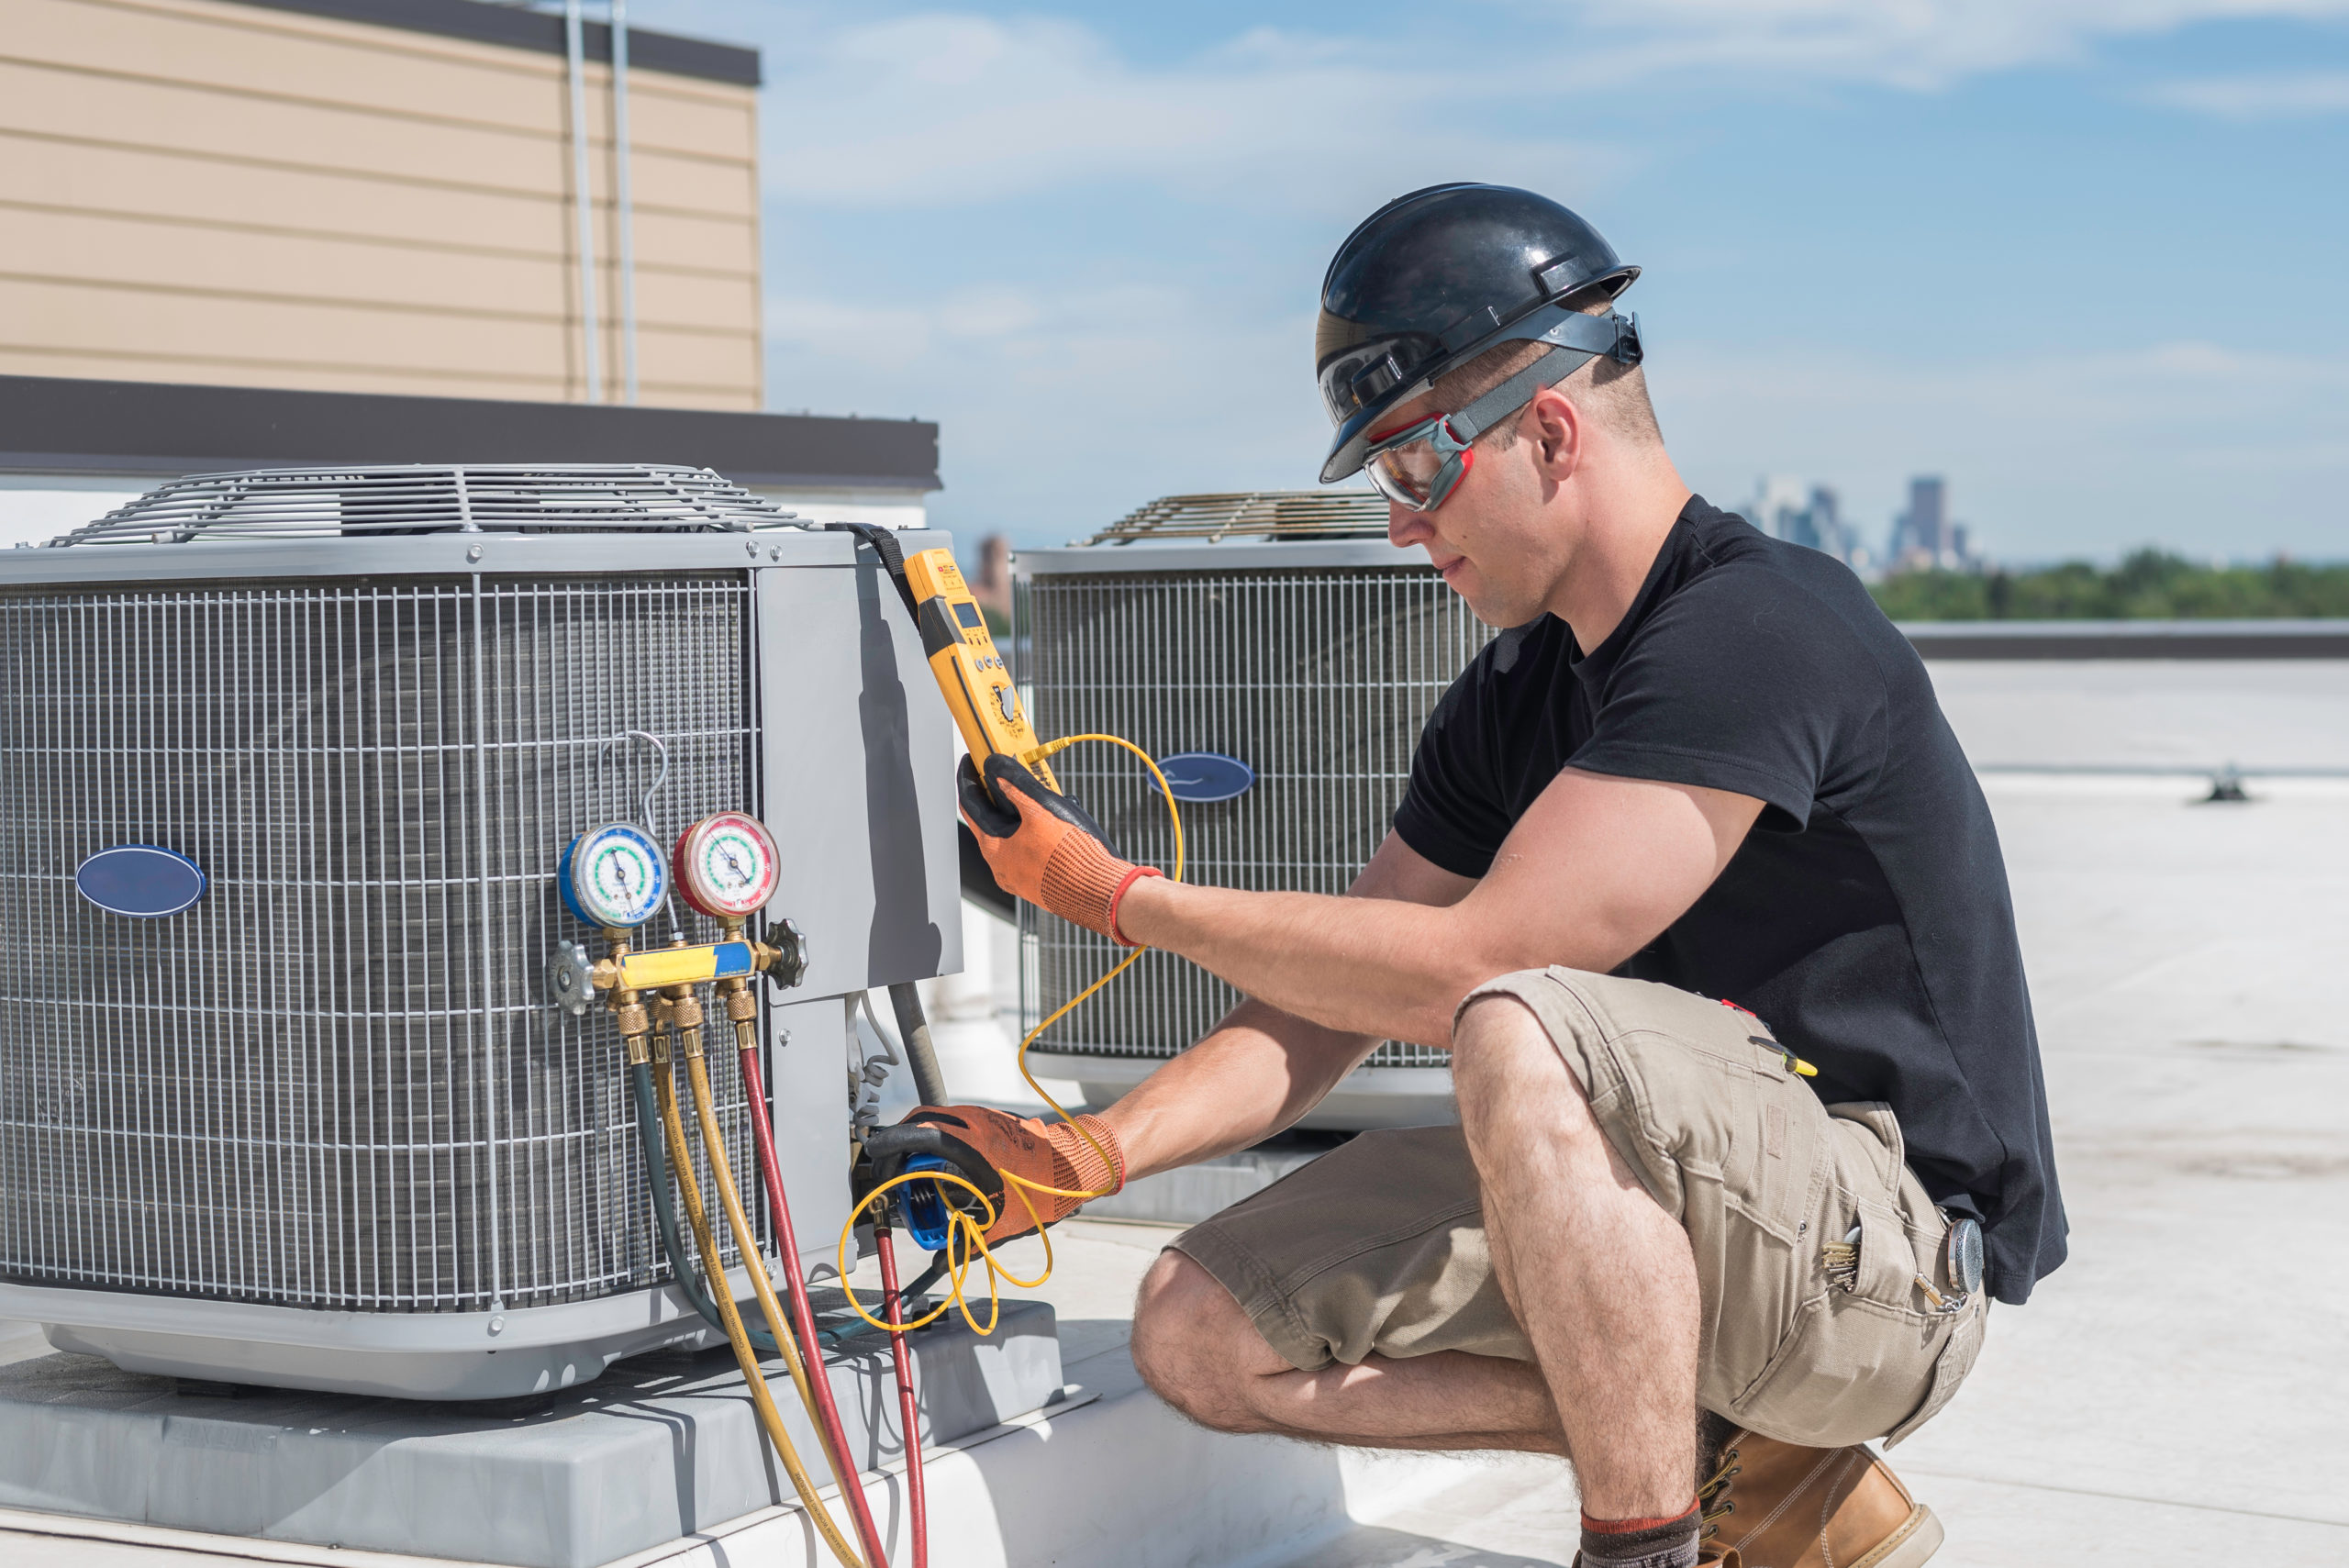 Man Working On Ac Unit